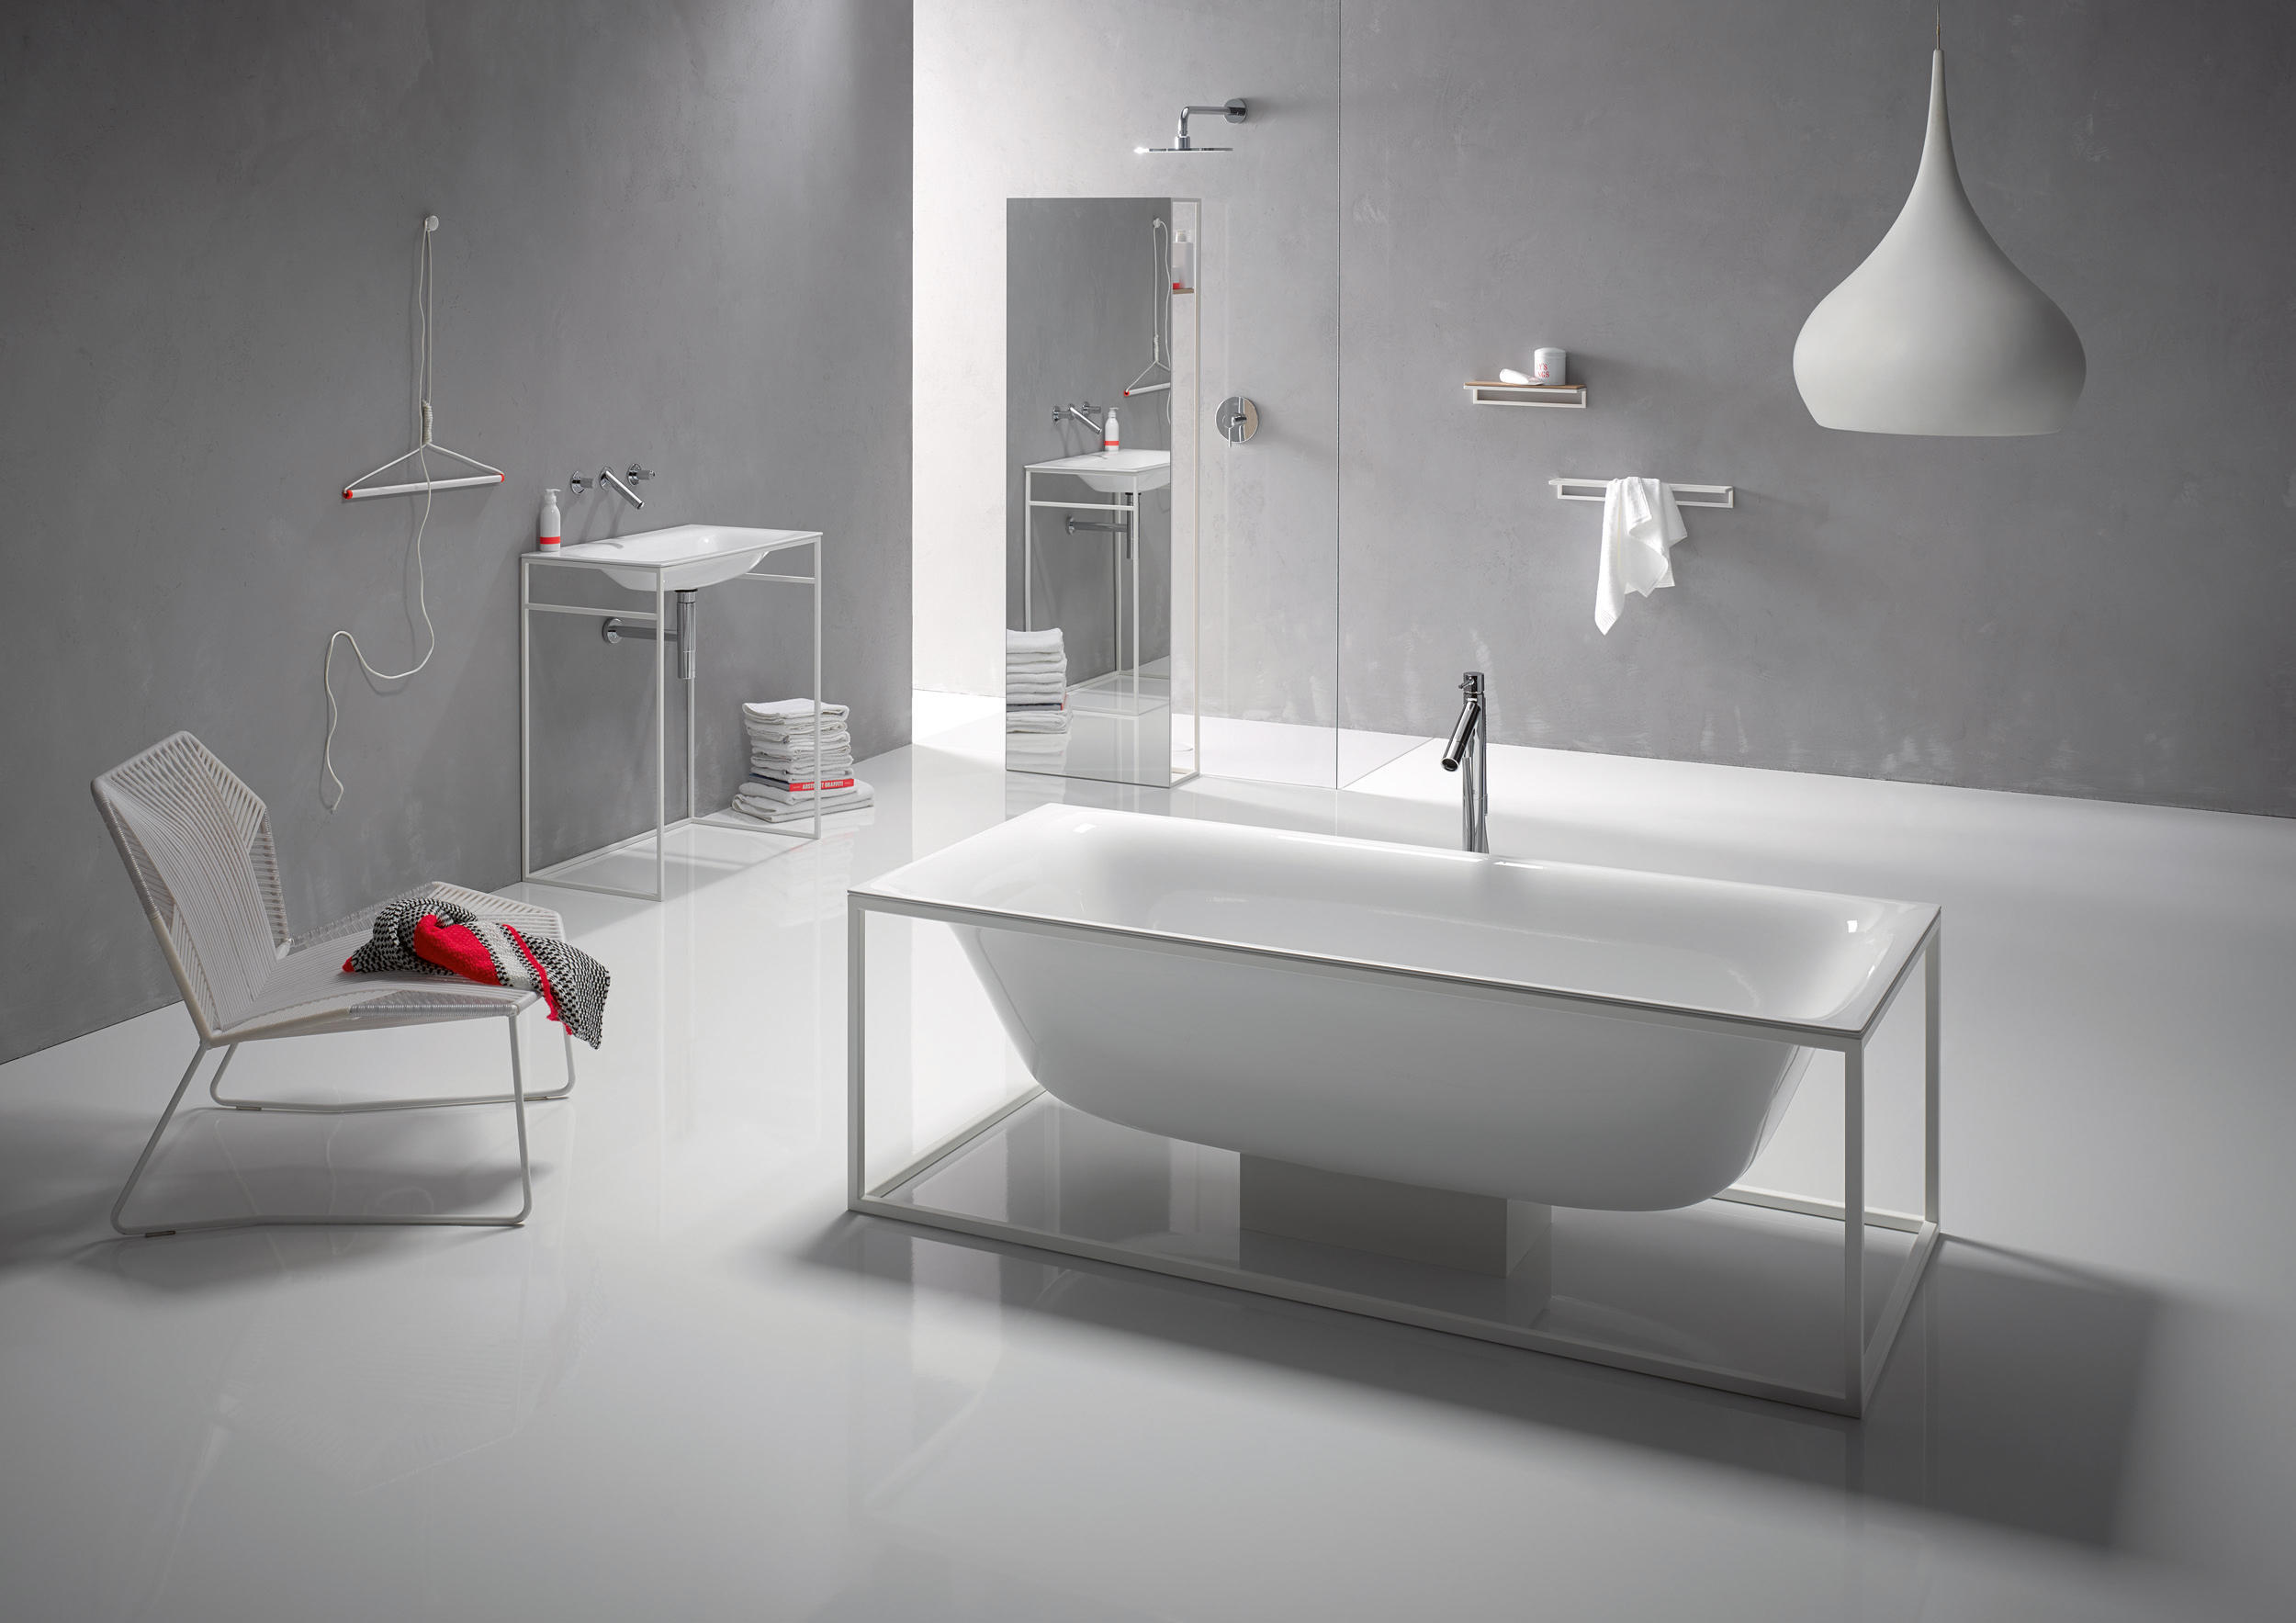 Vasca Da Bagno Bette : Bettelux shape bath vasche bette architonic